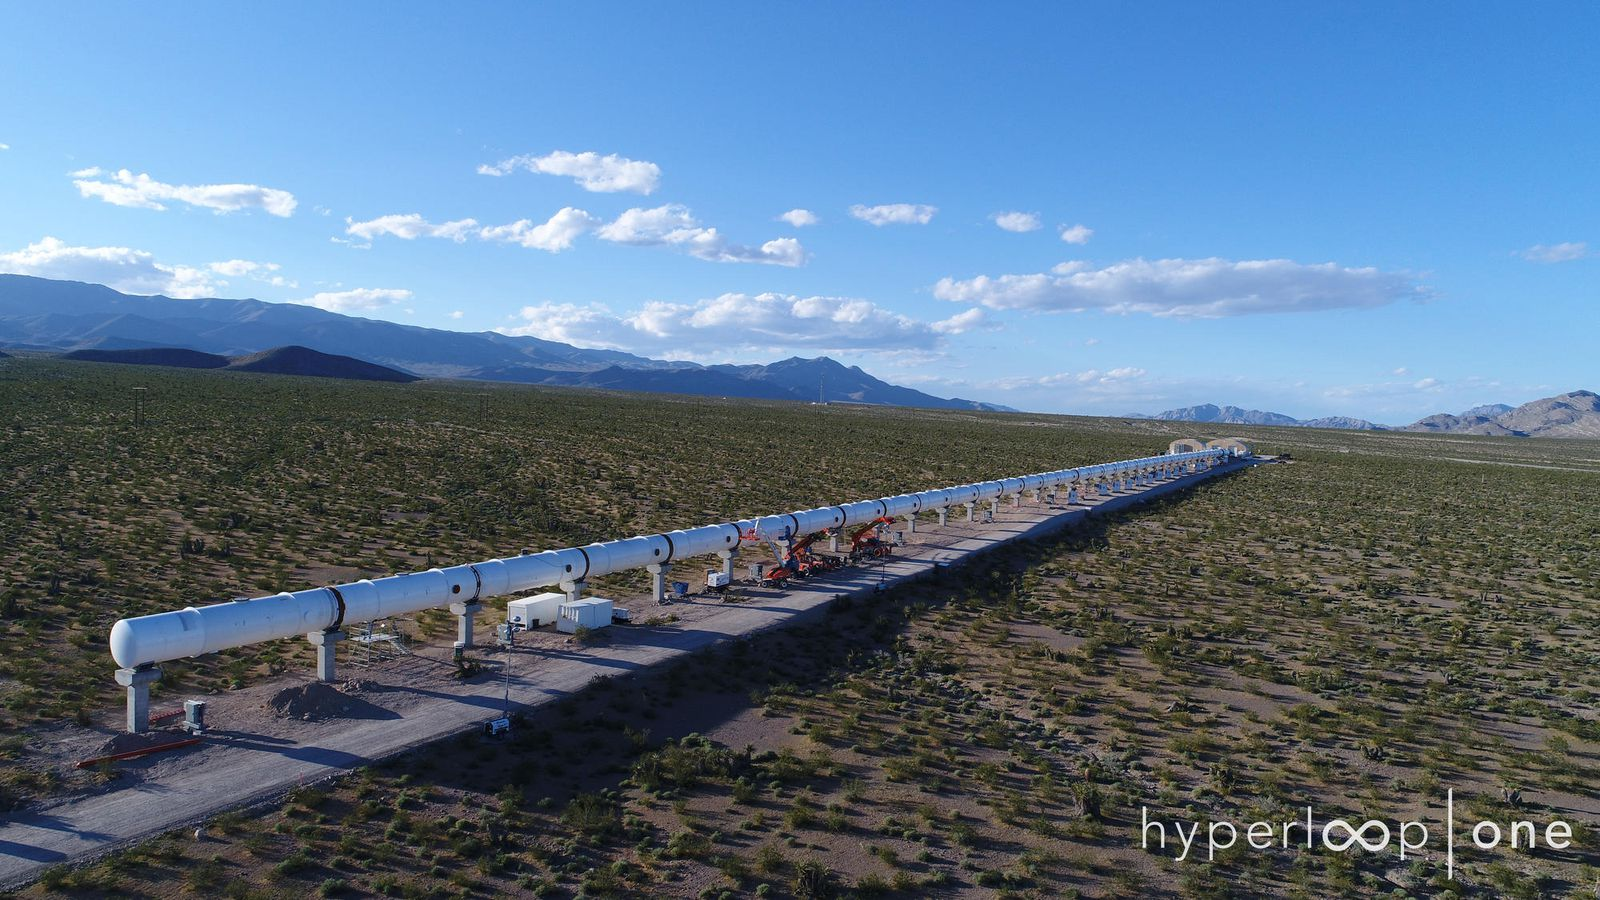 Cities want to believe in the hyperloop because US infrastructure is so bad